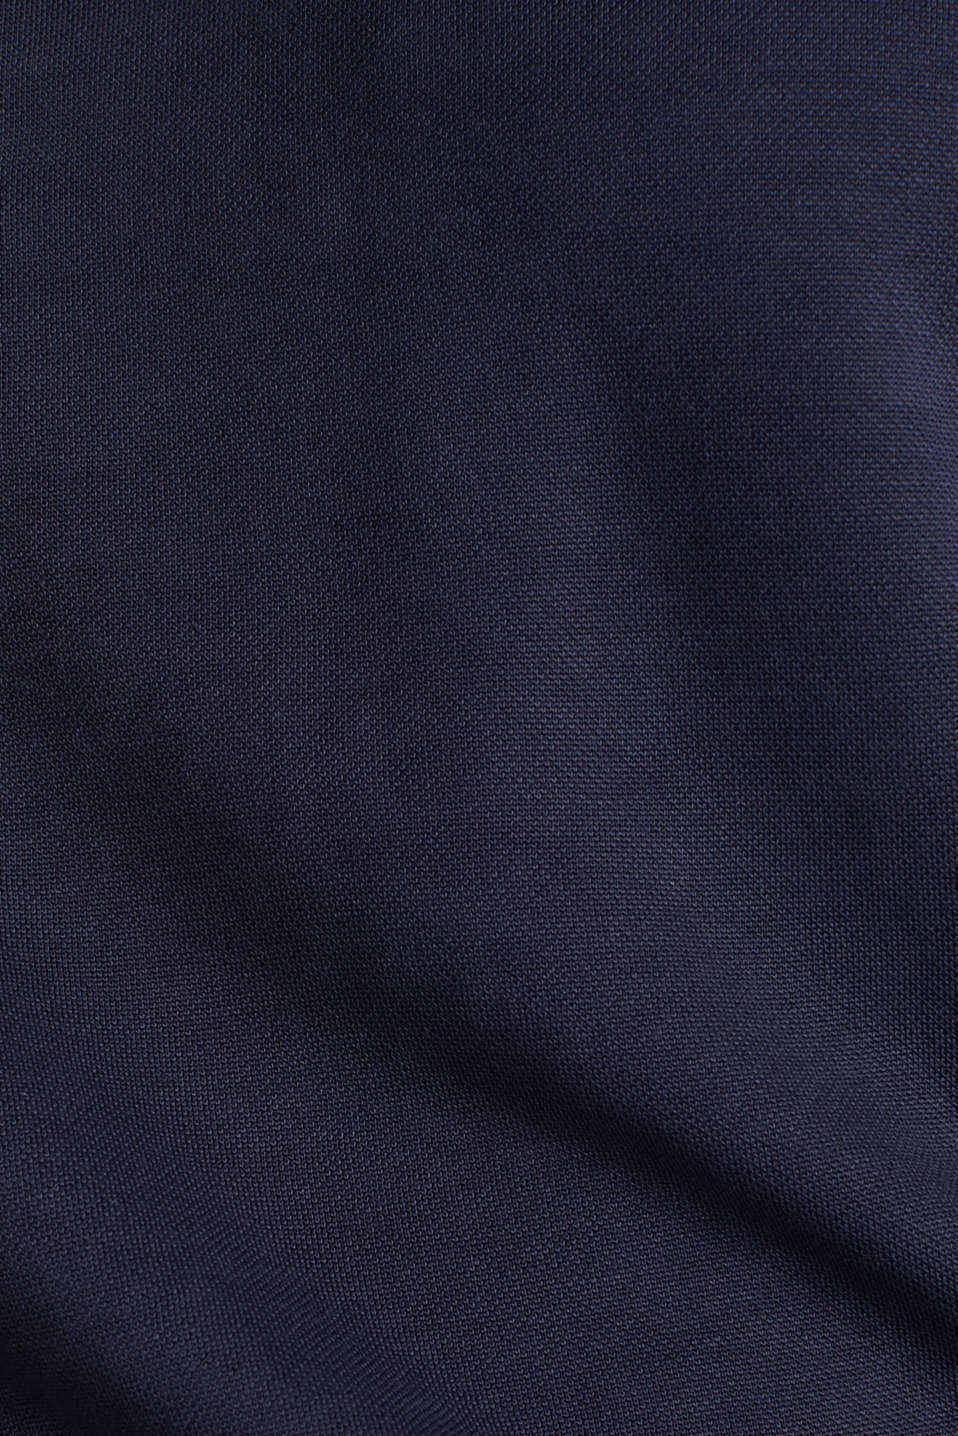 Piqué top with a wide neckline trim, NAVY, detail image number 4